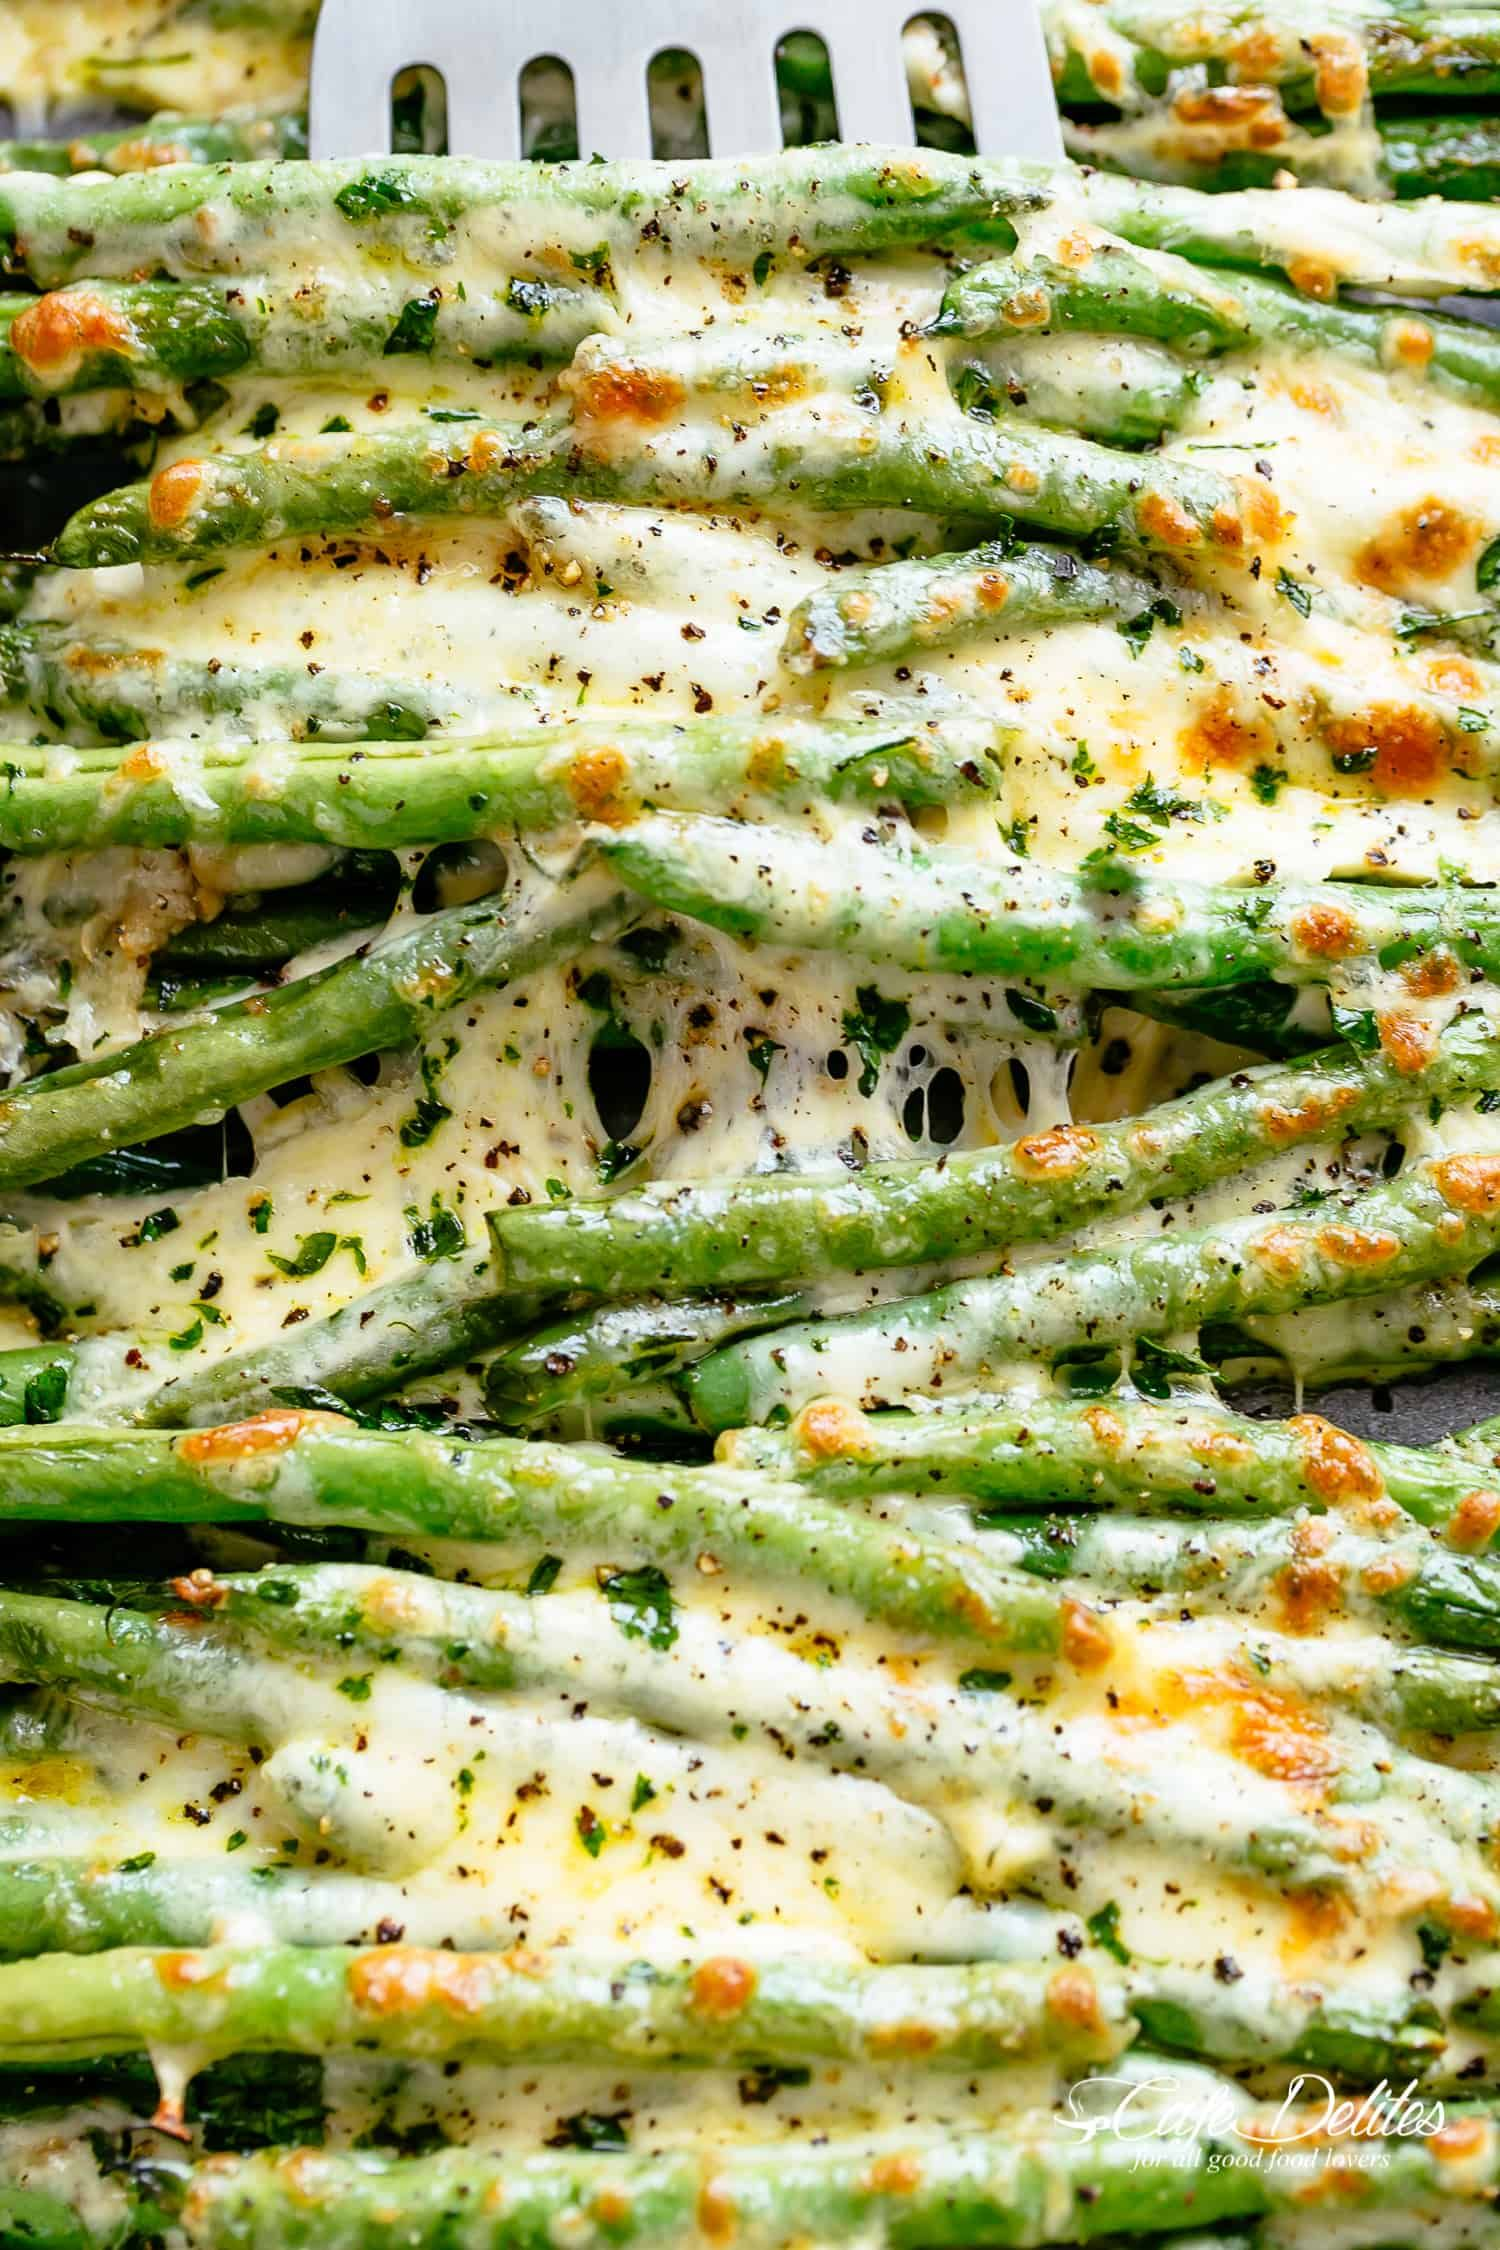 Roasted Green Beans are a delicious holiday side dish, roasted in olive oil, gar…